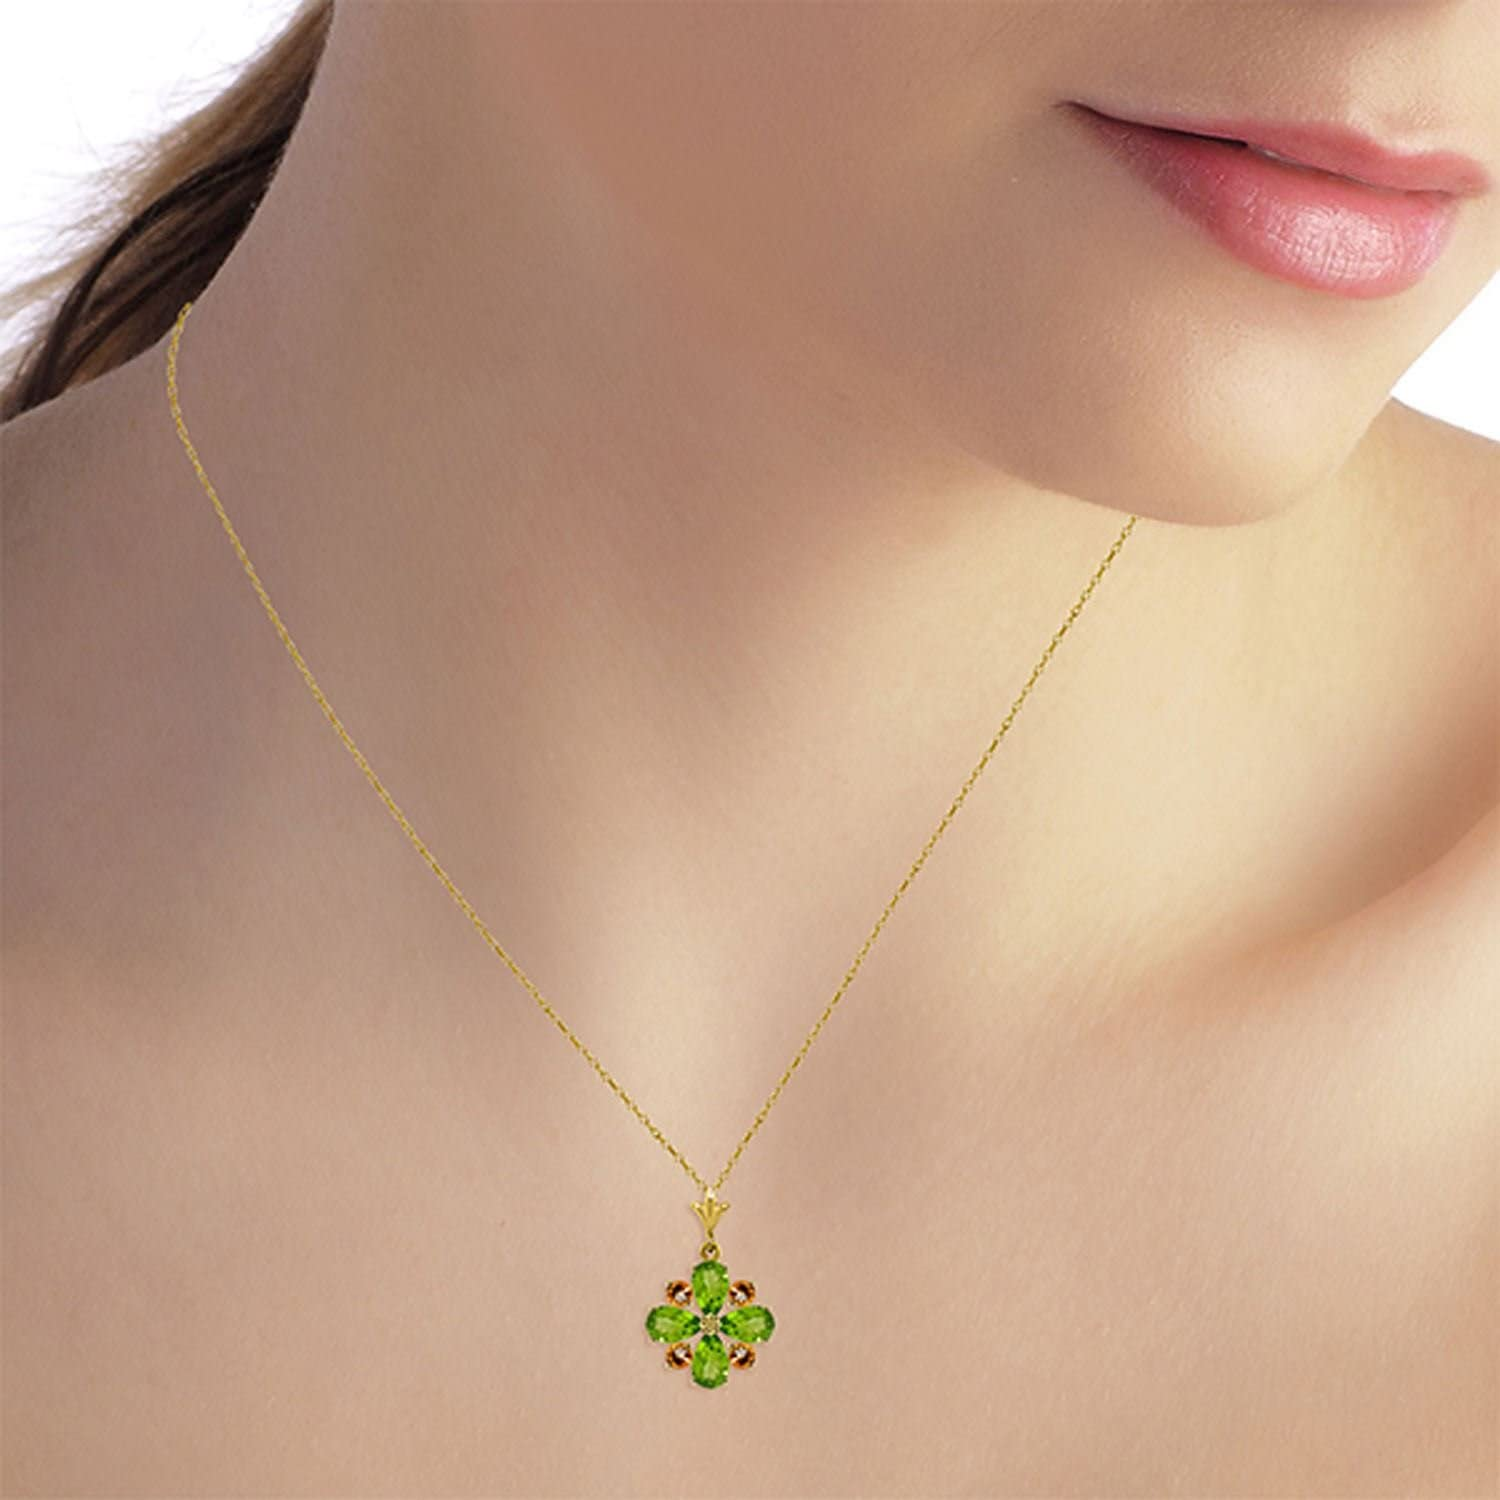 ALARRI 2.43 Carat 14K Solid Gold Amethyst Of Love Peridot Citrine Necklace with 24 Inch Chain Length